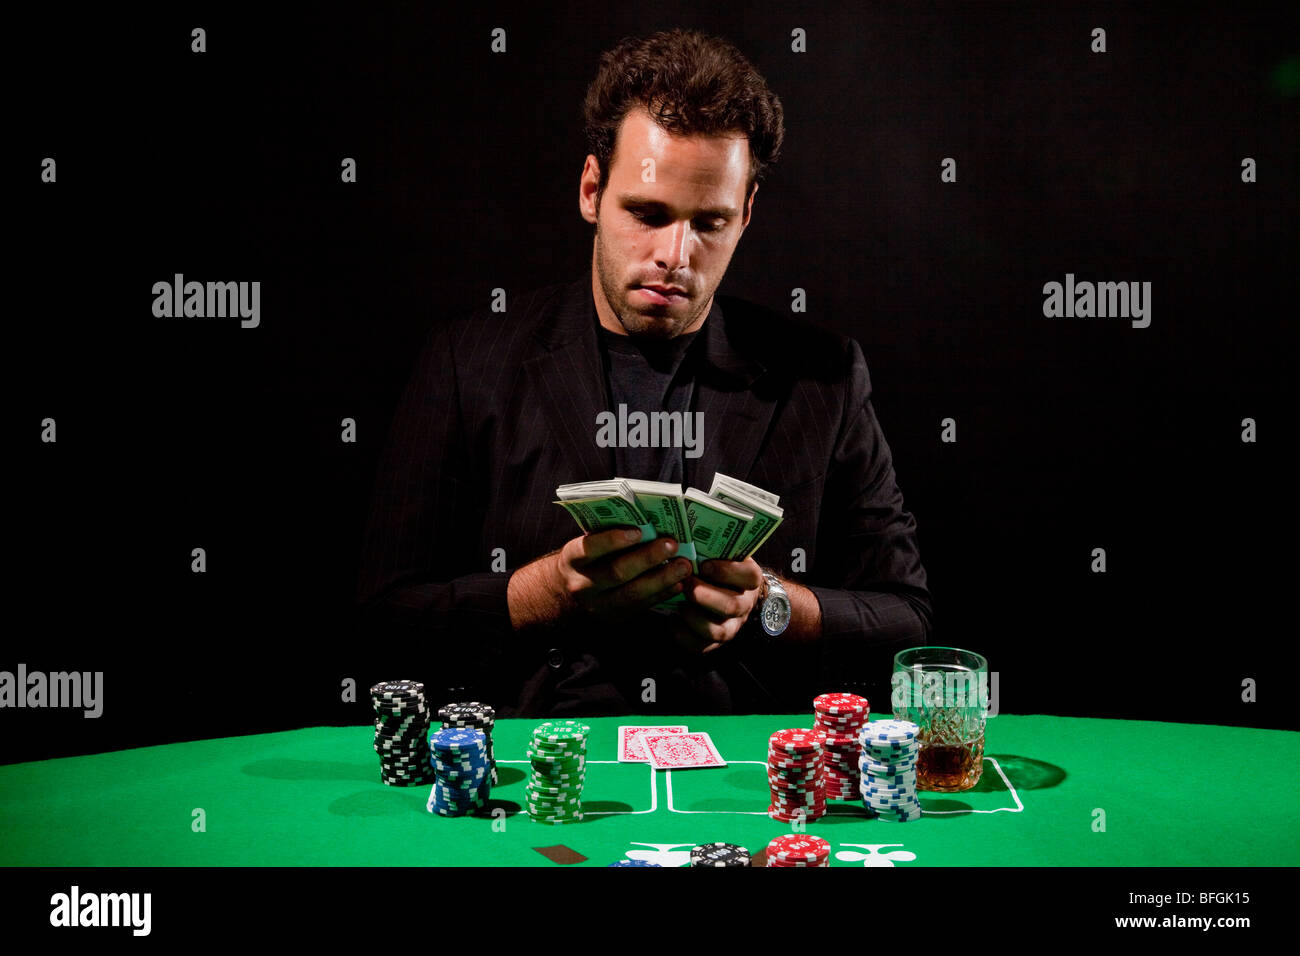 A young male gambler at the gambling table counts his money model release available - Stock Image